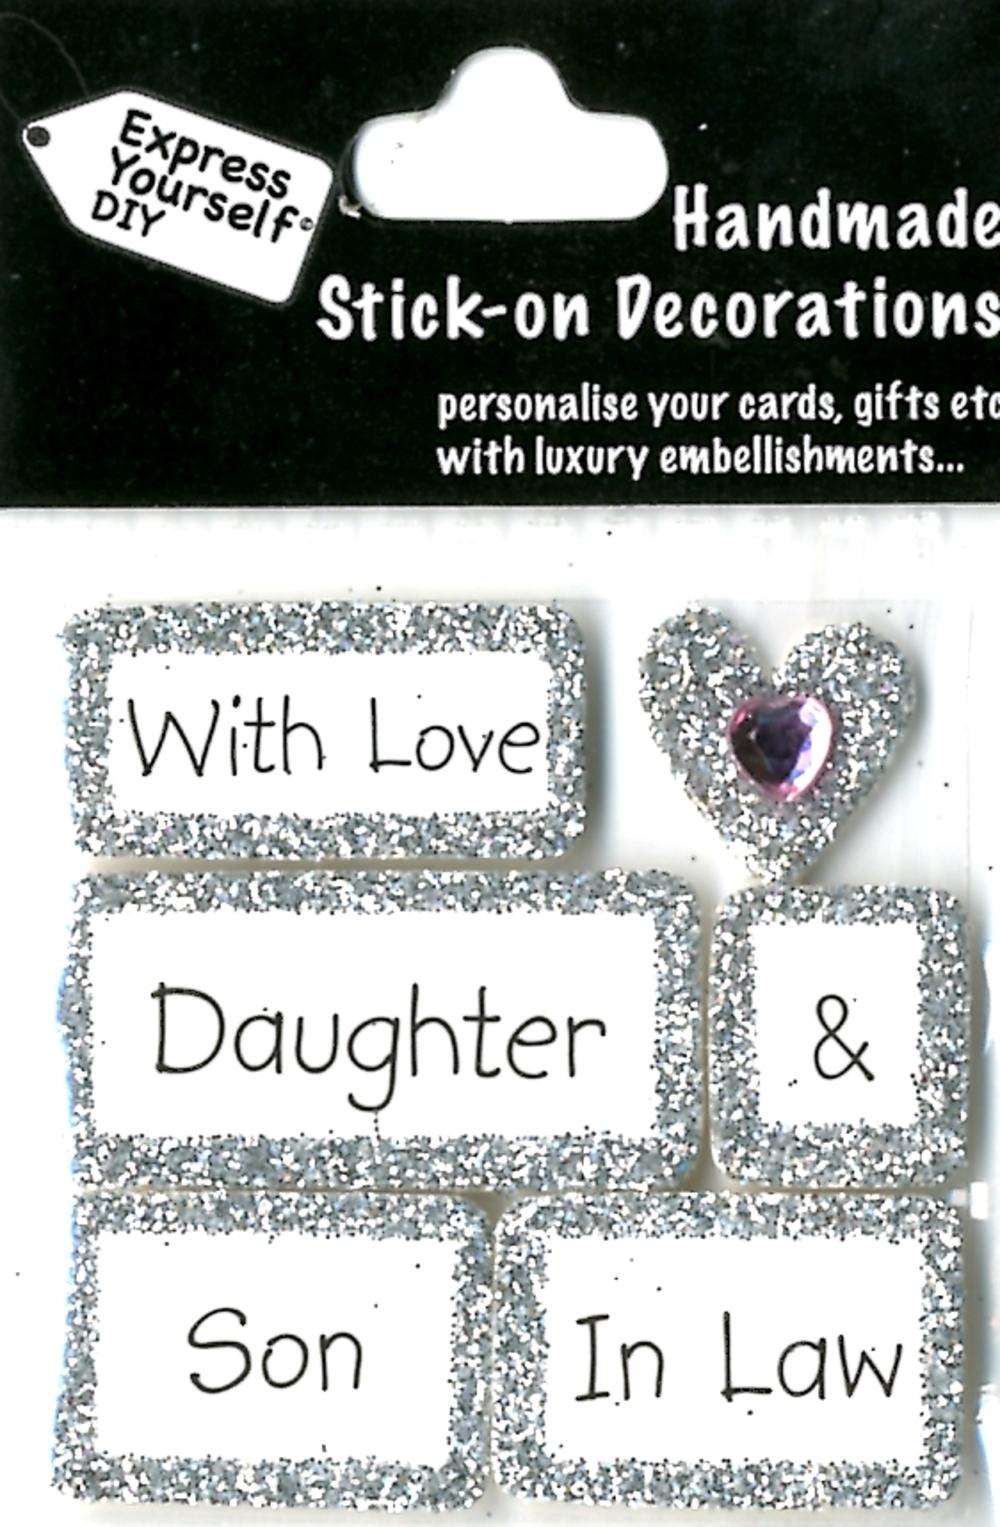 With love daughter son in law diy greeting card toppers gift thumbnail 1 solutioingenieria Gallery